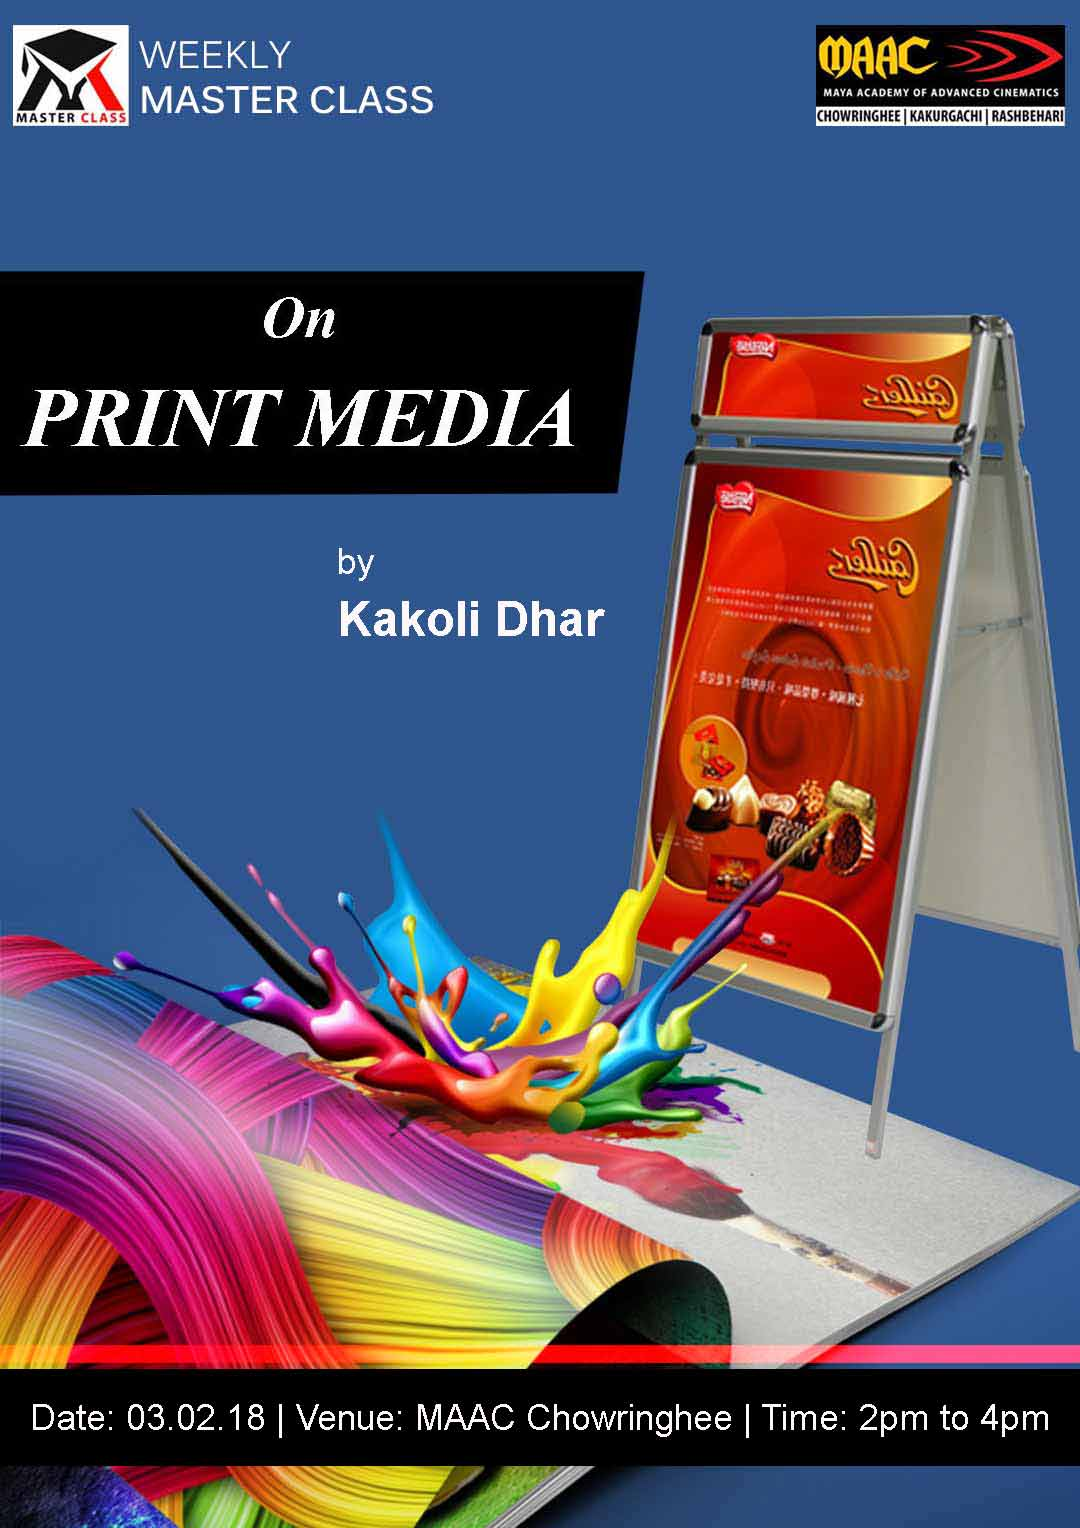 Weekly Master Class on Print Media